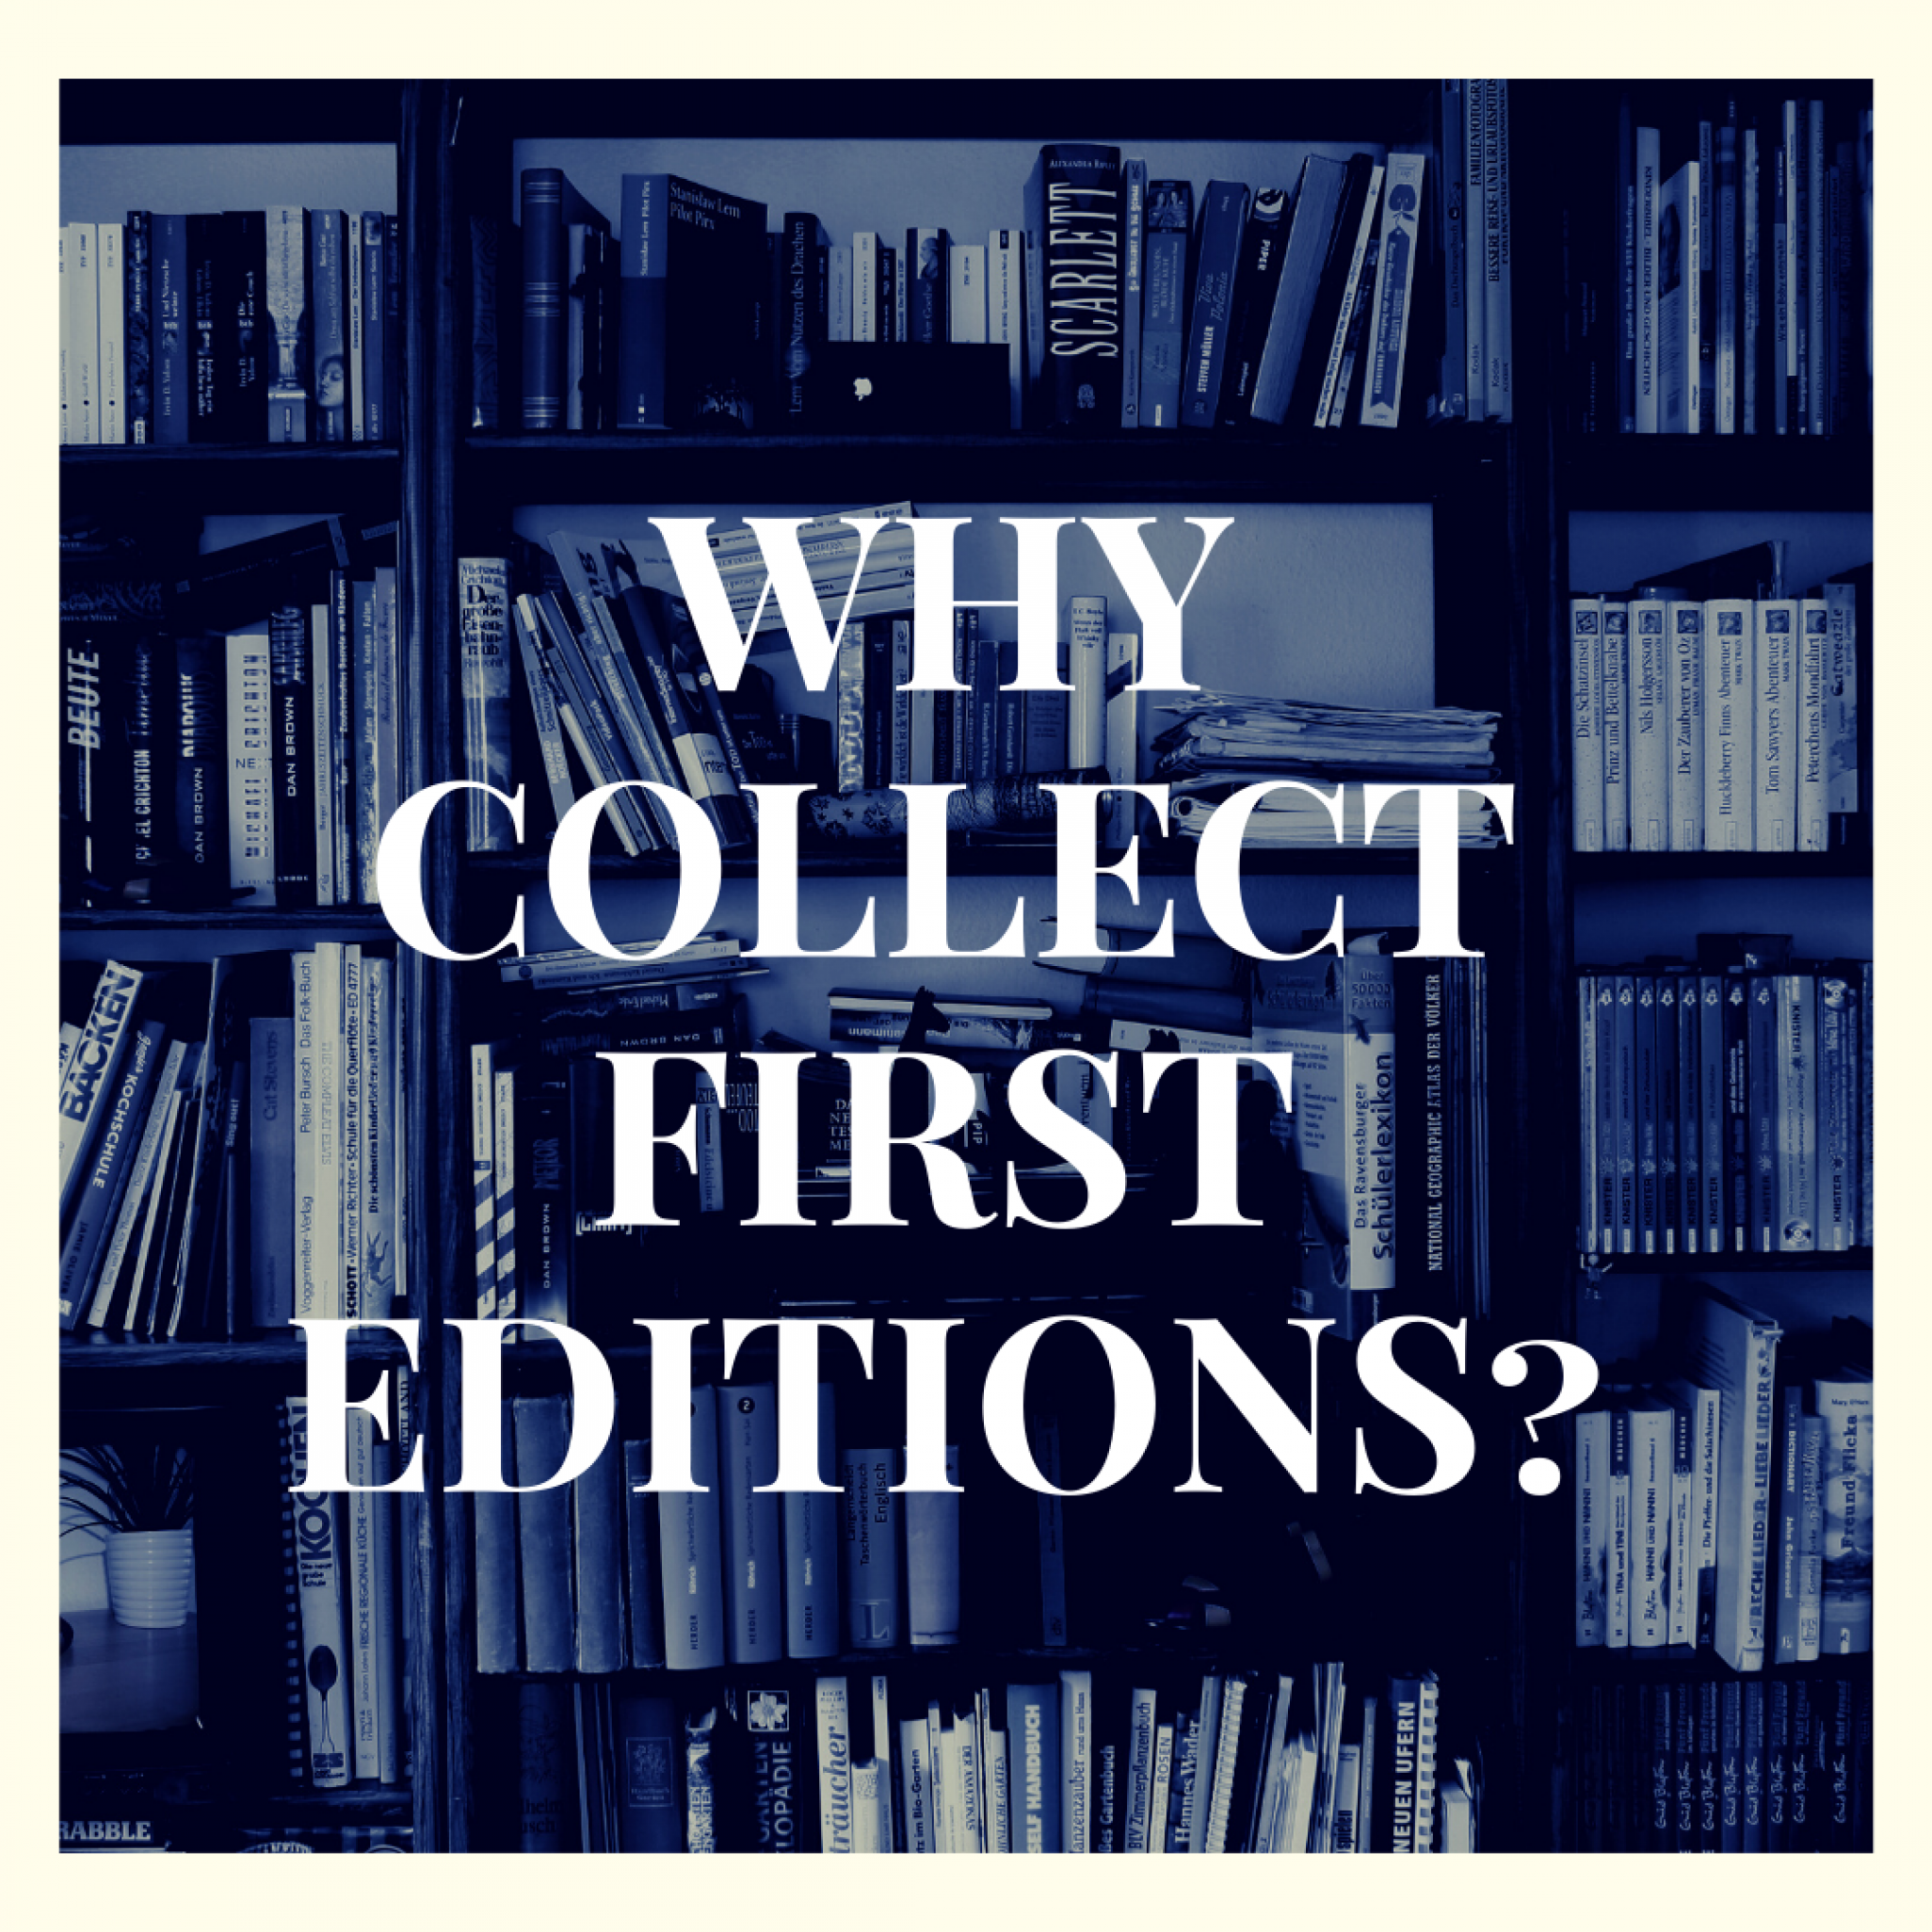 Why collect first editions?